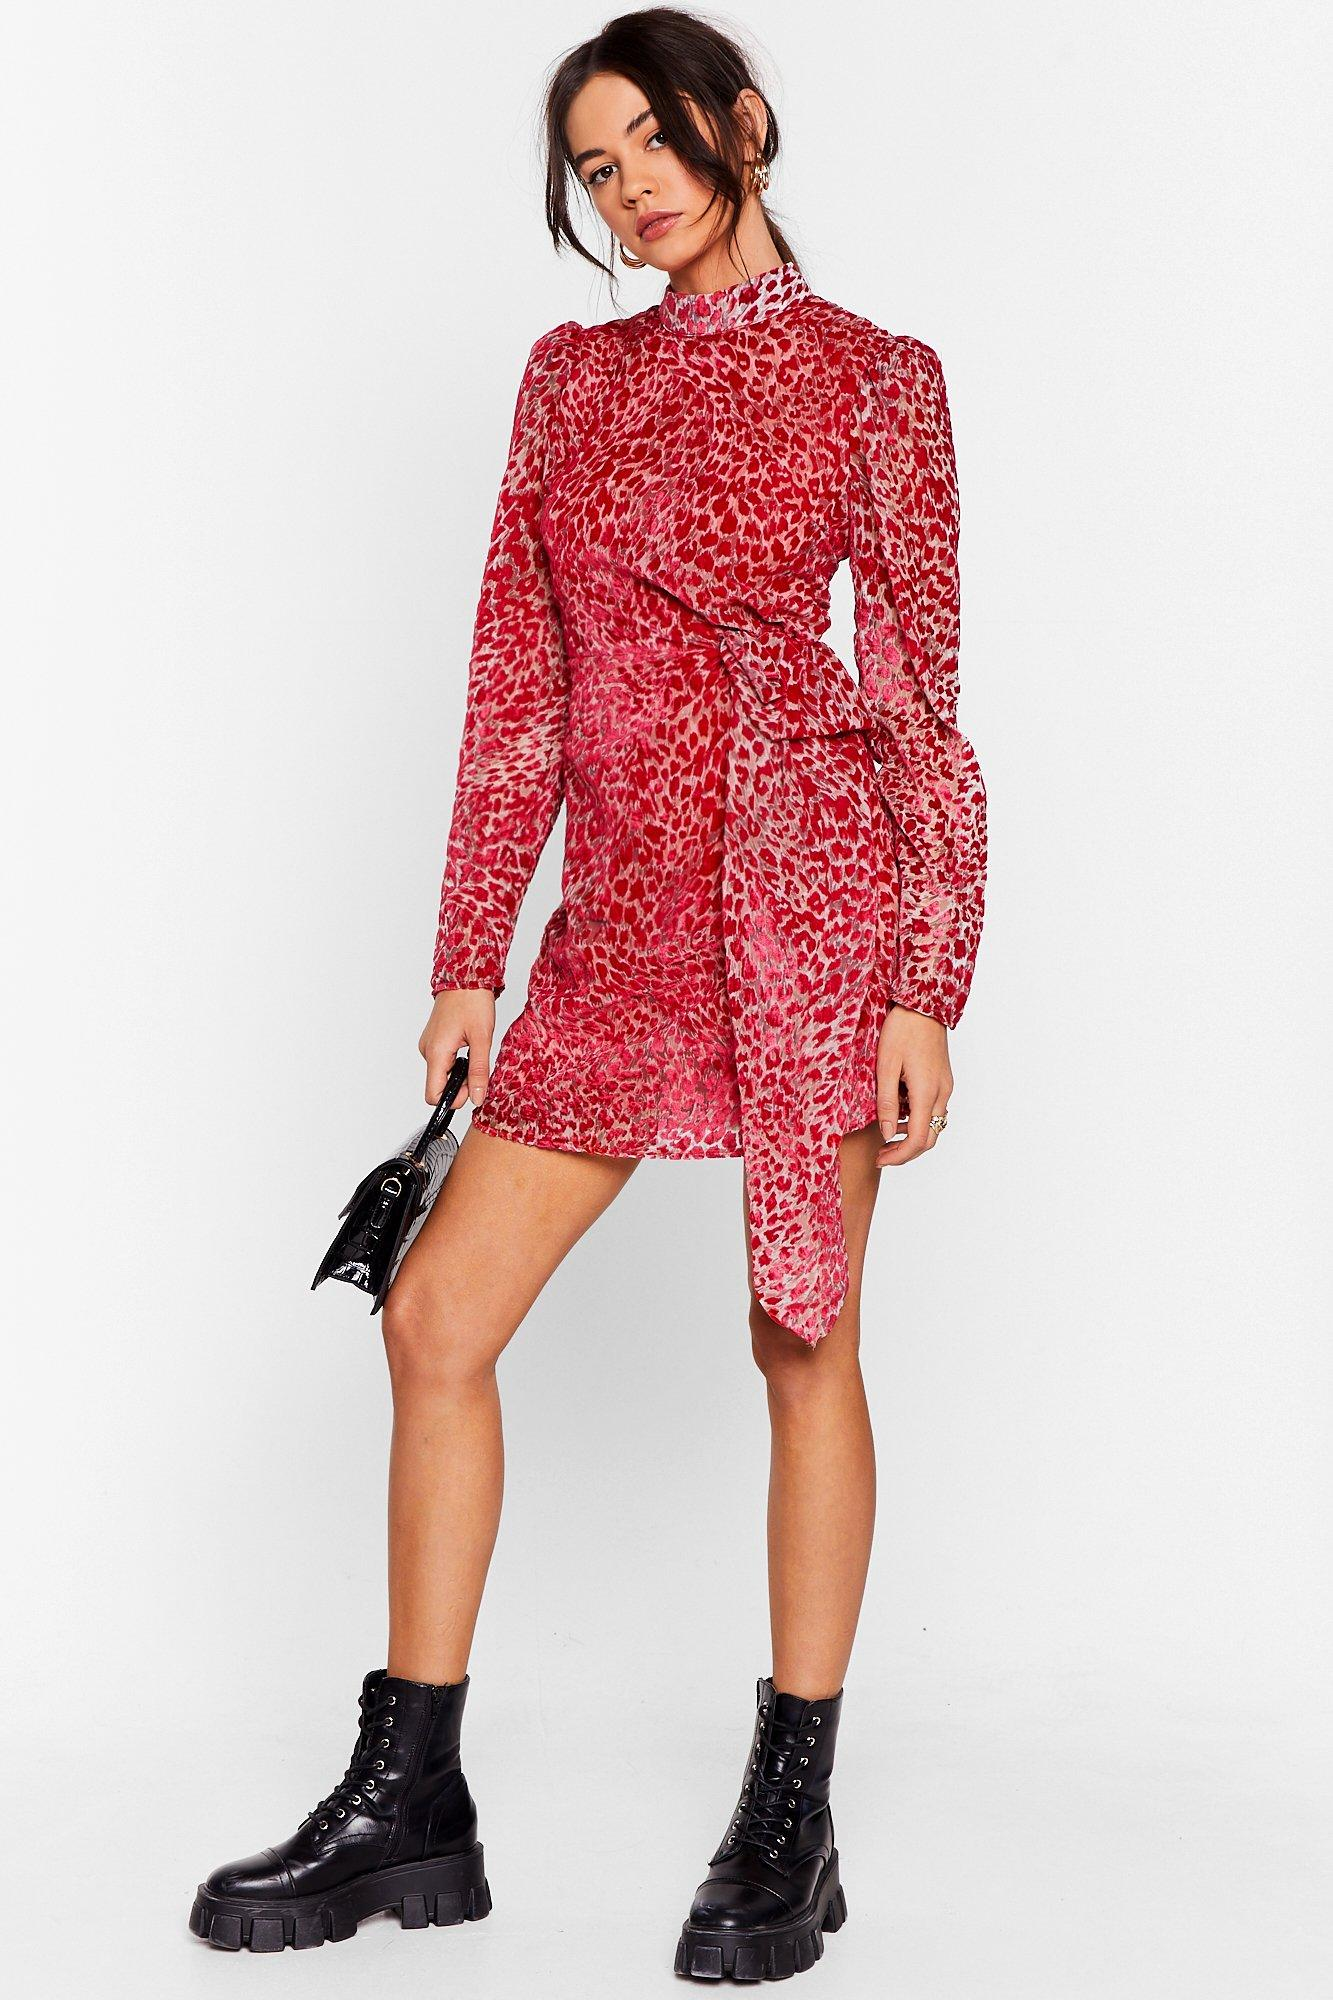 Image of Wild About It Leopard Mini Dress